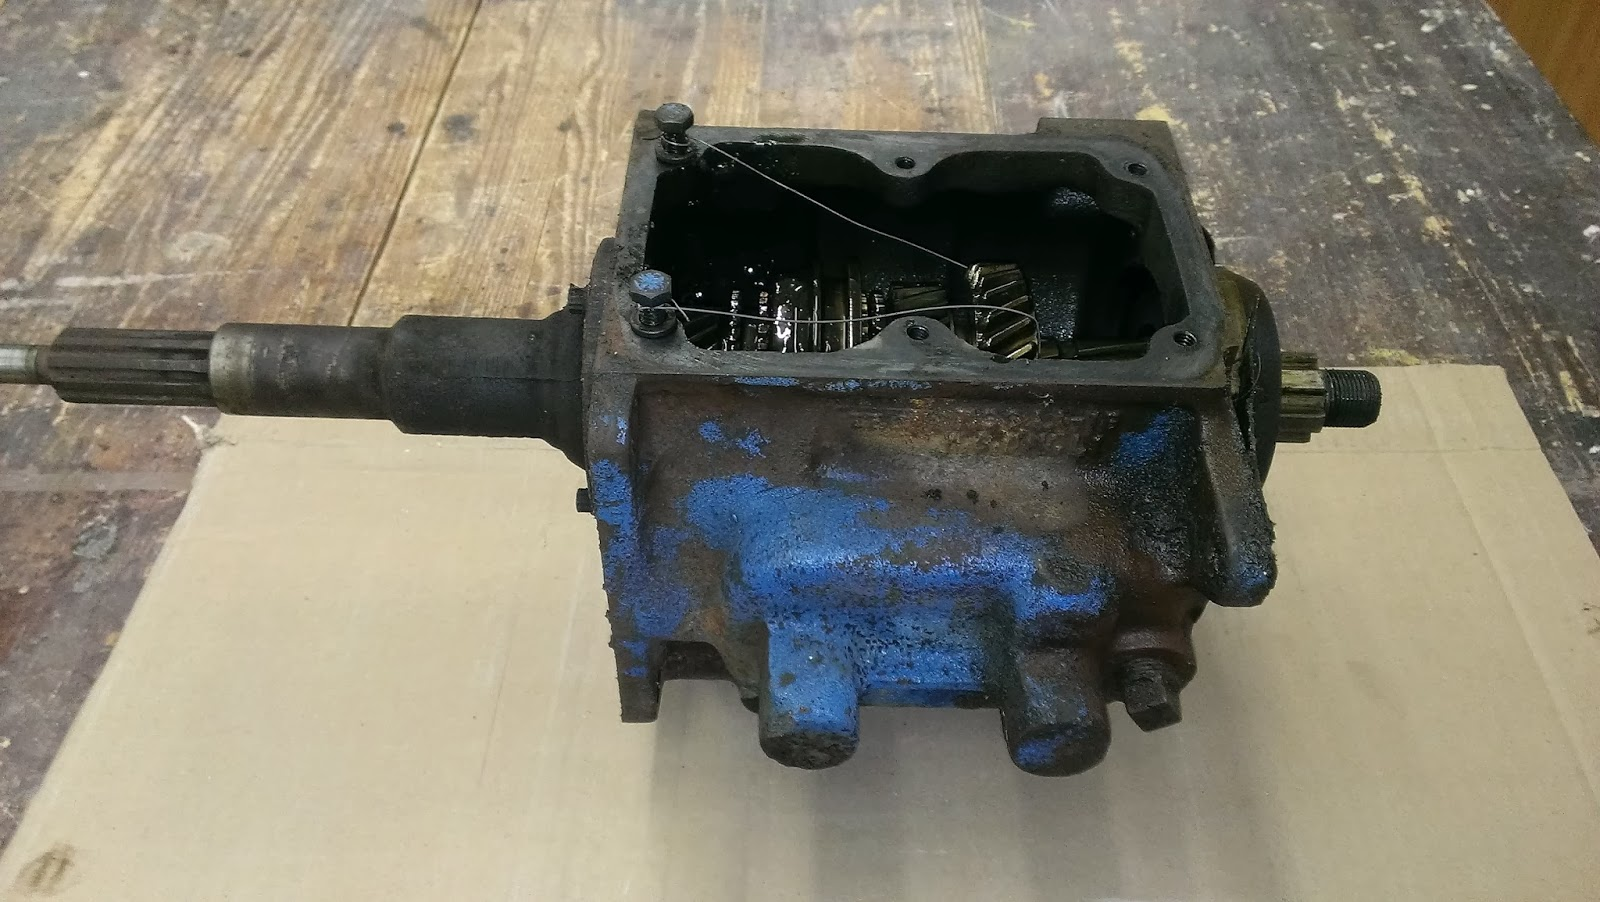 hight resolution of transfer case and pto ready to take apart will do that after transmission